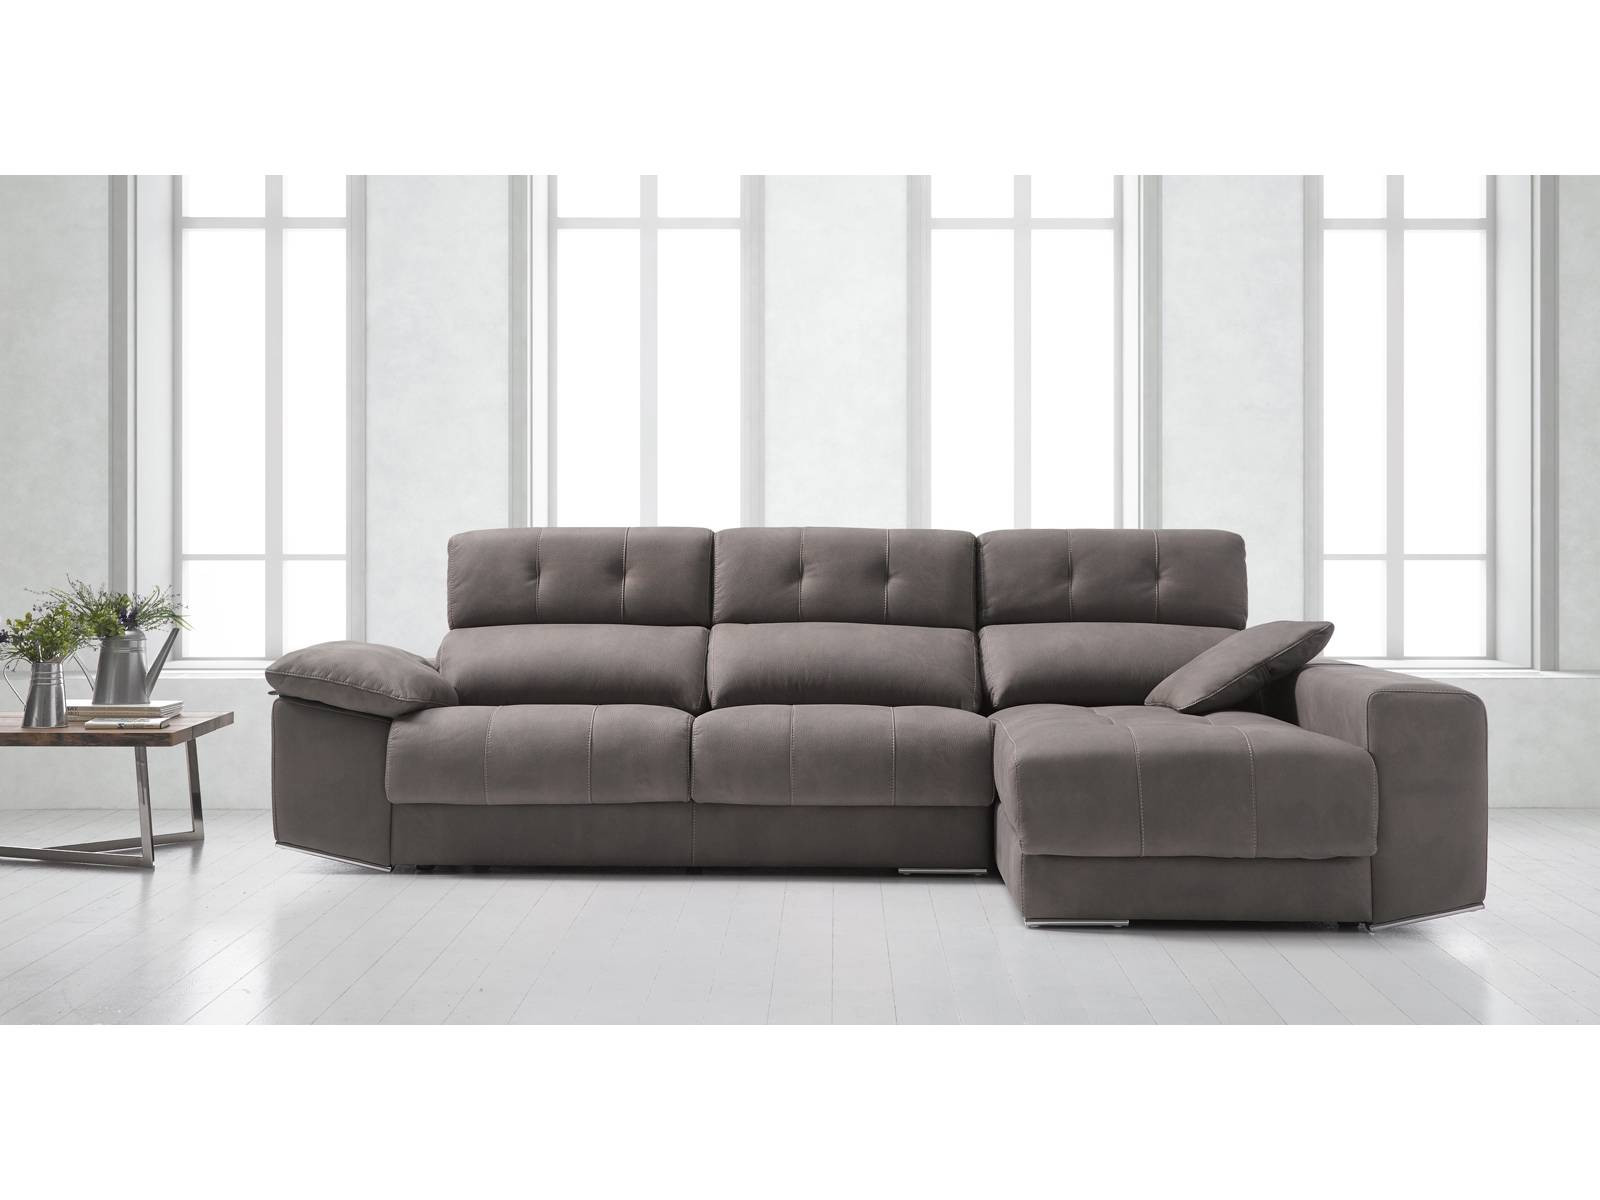 Comprar sofa Chaise Longue Adorable sofá Con Chaiselongue Mod Mónica Of 46  Magnífico Comprar sofa Chaise Longue